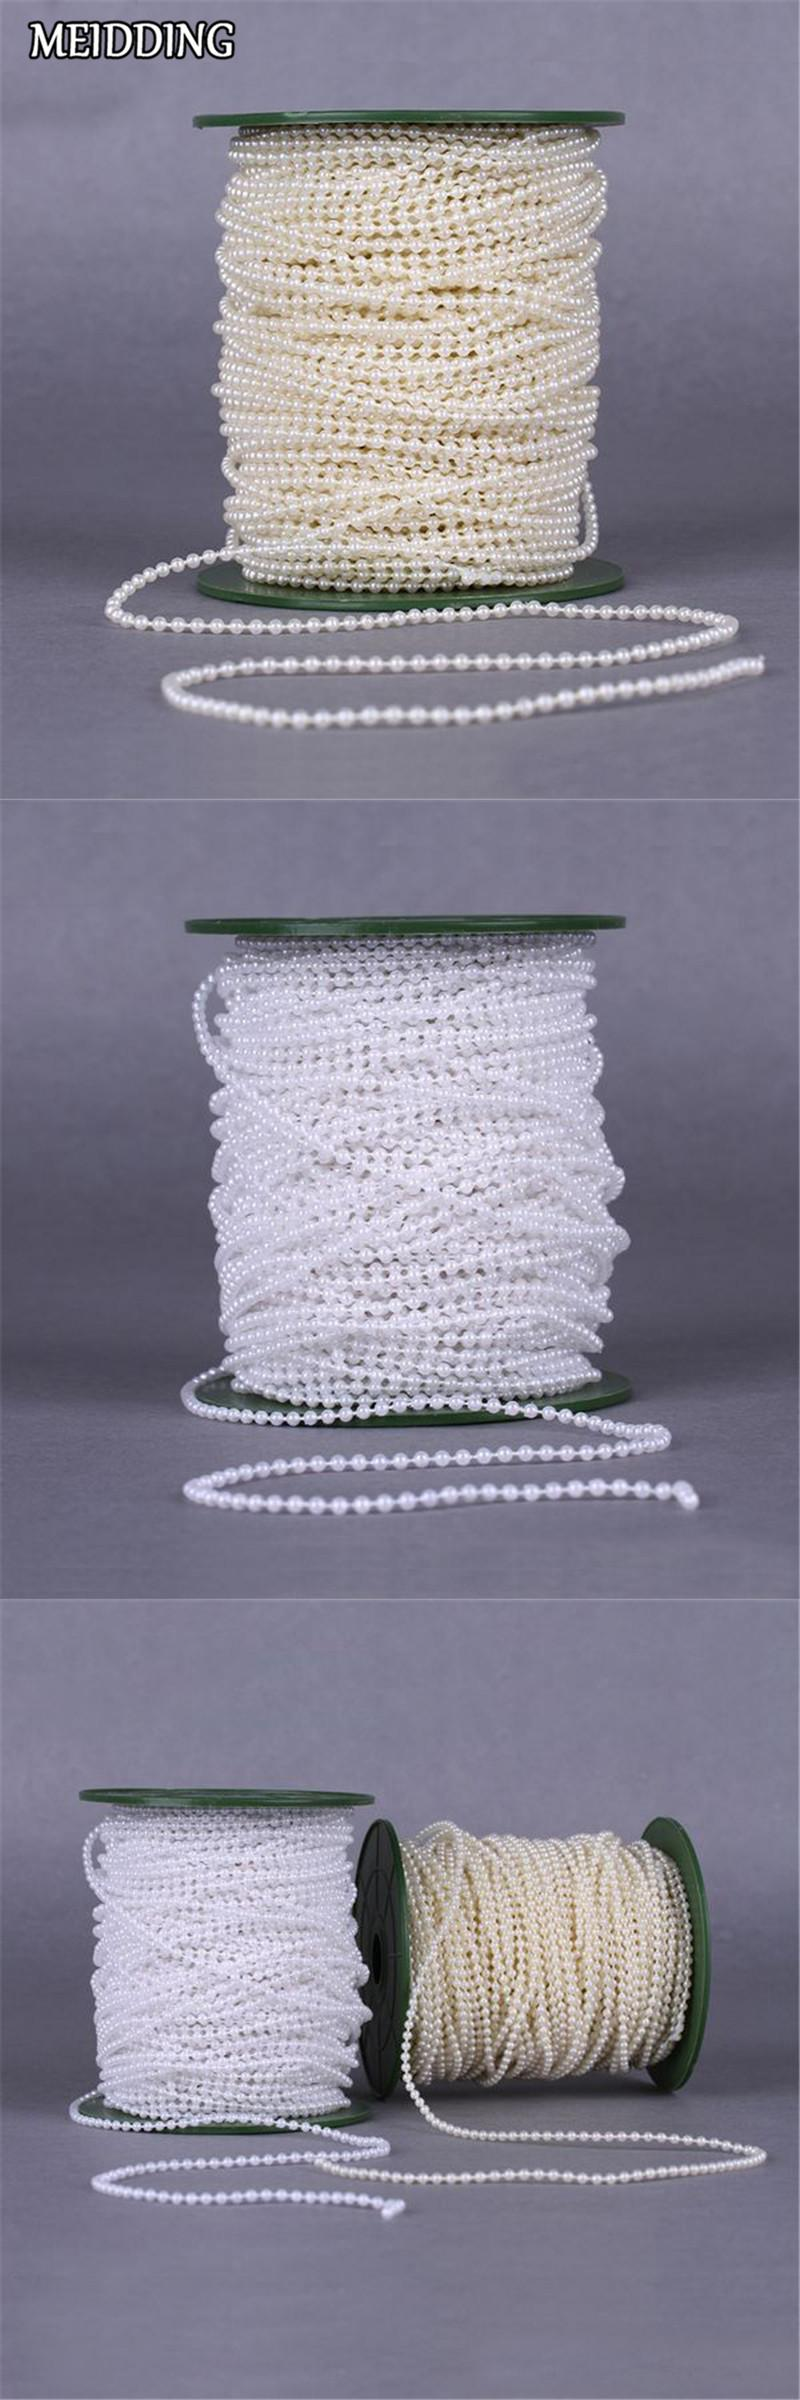 Meidding 10 meters 3mm pearl beads line chain pearls garland for meters pearl beads line chain pearls garland for wedding room decoration supplies bridal bouquet accessories junglespirit Image collections